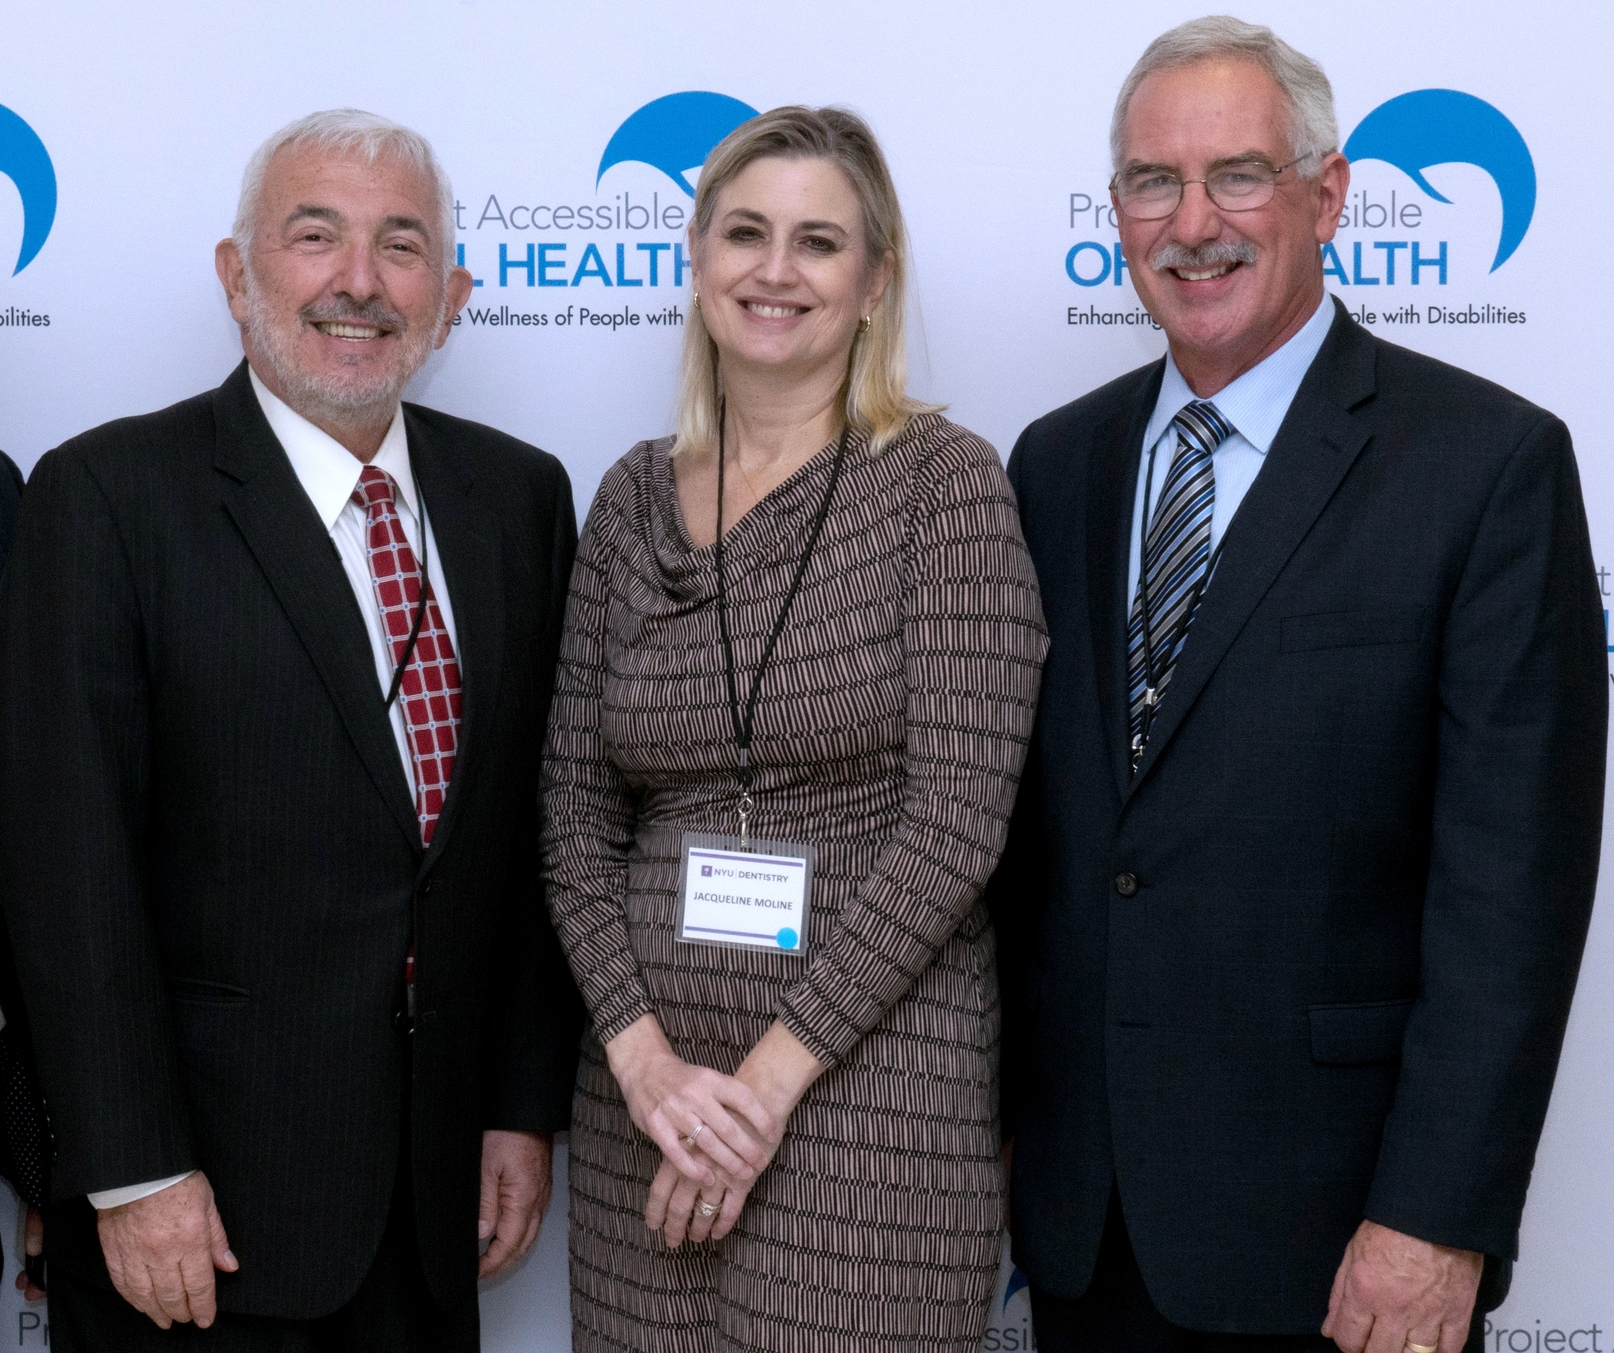 L-R . Dr. Ron Burkaroff, DMD, MPH, Chairman of the Department of Dental Medicine, Northwell Health and Chair of Dental Medicine at Hofstra University; Jacqueline Moline, MD, MSc, FACP, FACOEM, Occupational Medicine, Northwell Health and Chair, Hofstra University Department of Occupational Medicine, Epidemiology and Prevention; and Dr. Carl H. Tegtmeier, Co-Chair, the New York State Office for People with Developmental Disabilities Task Force on Special Dentistry.